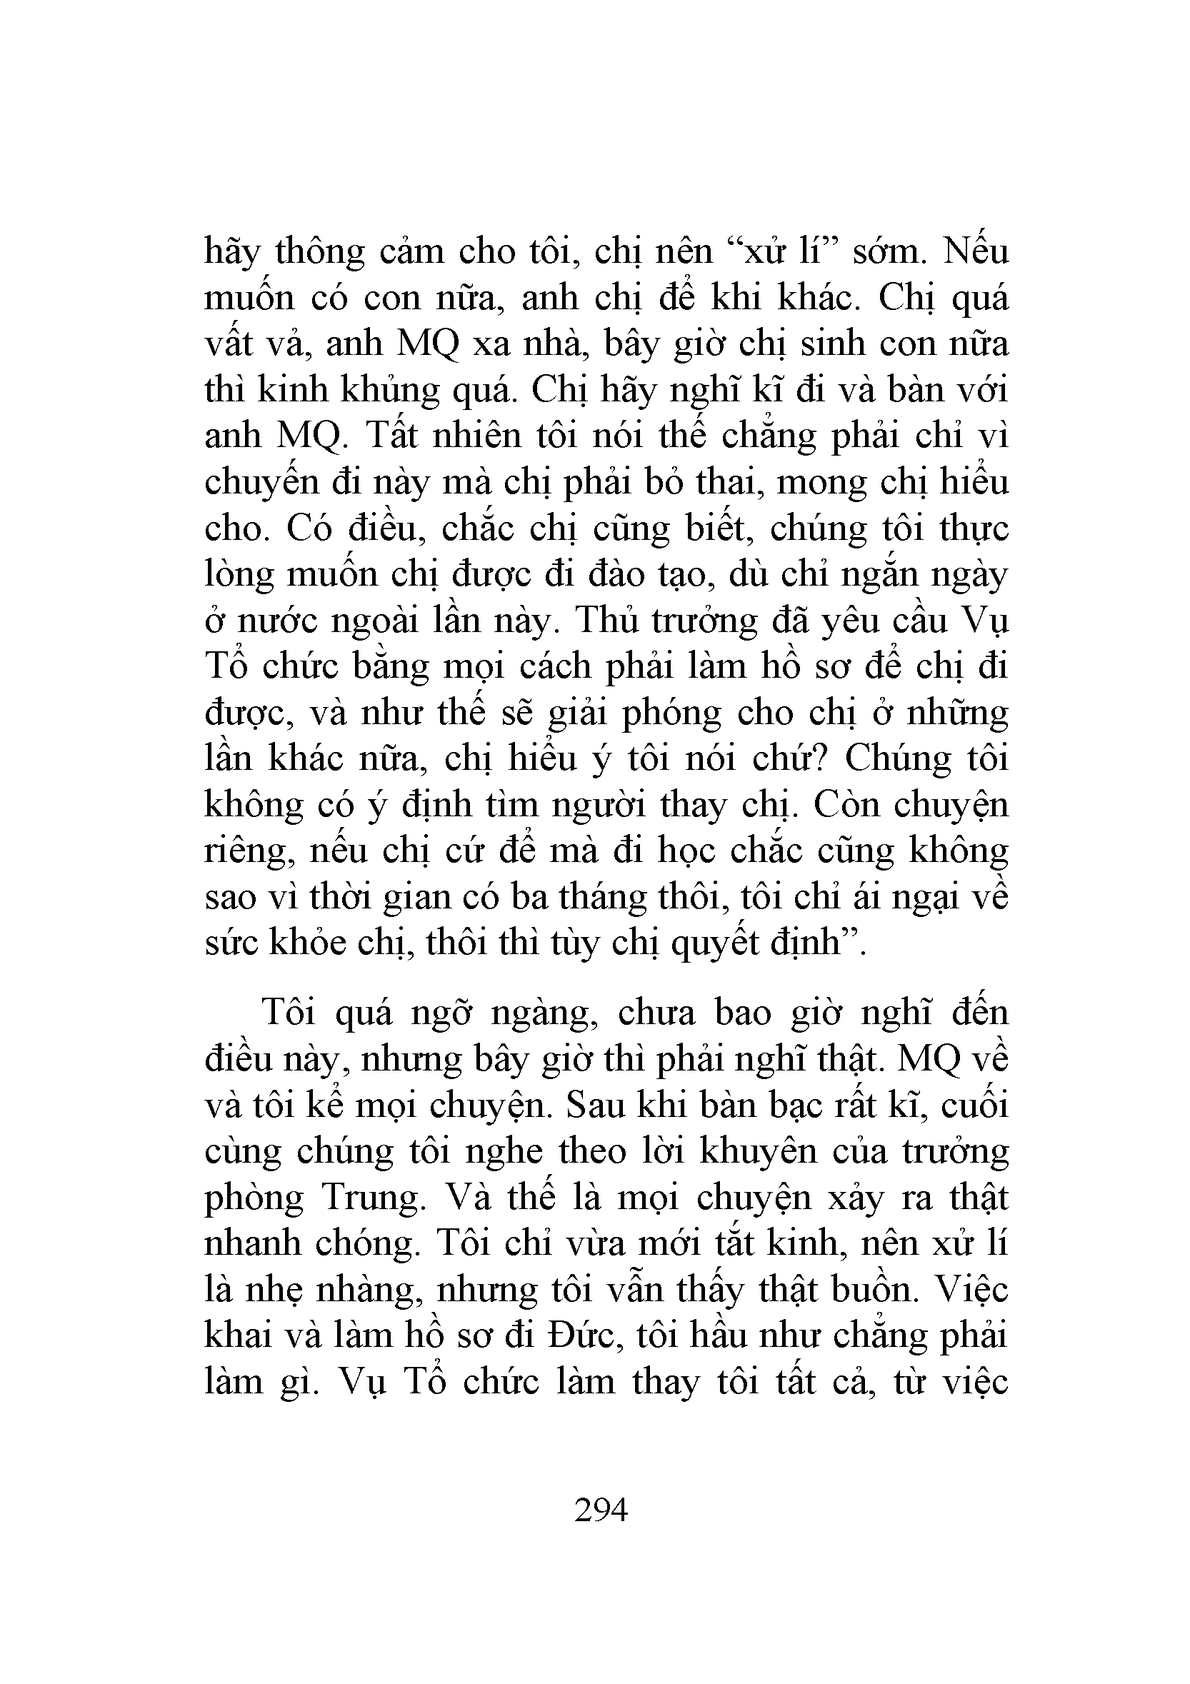 Page 294